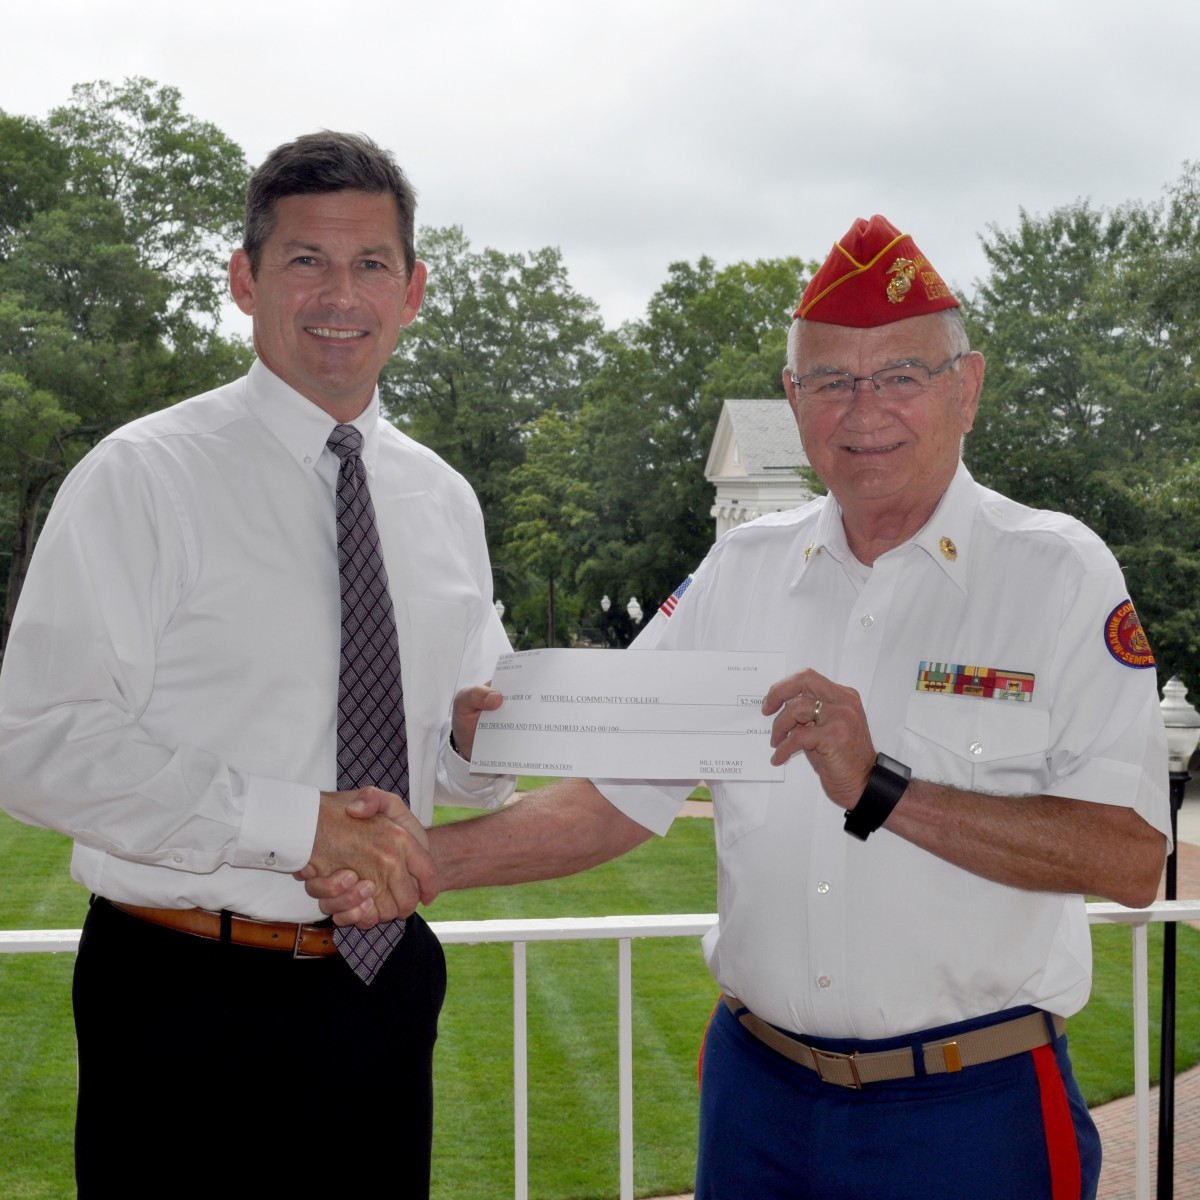 Dr. Tim Brewer, President, Mitchell Community College and Dick Camery, Commandant, Marine Corps League of Iredell County